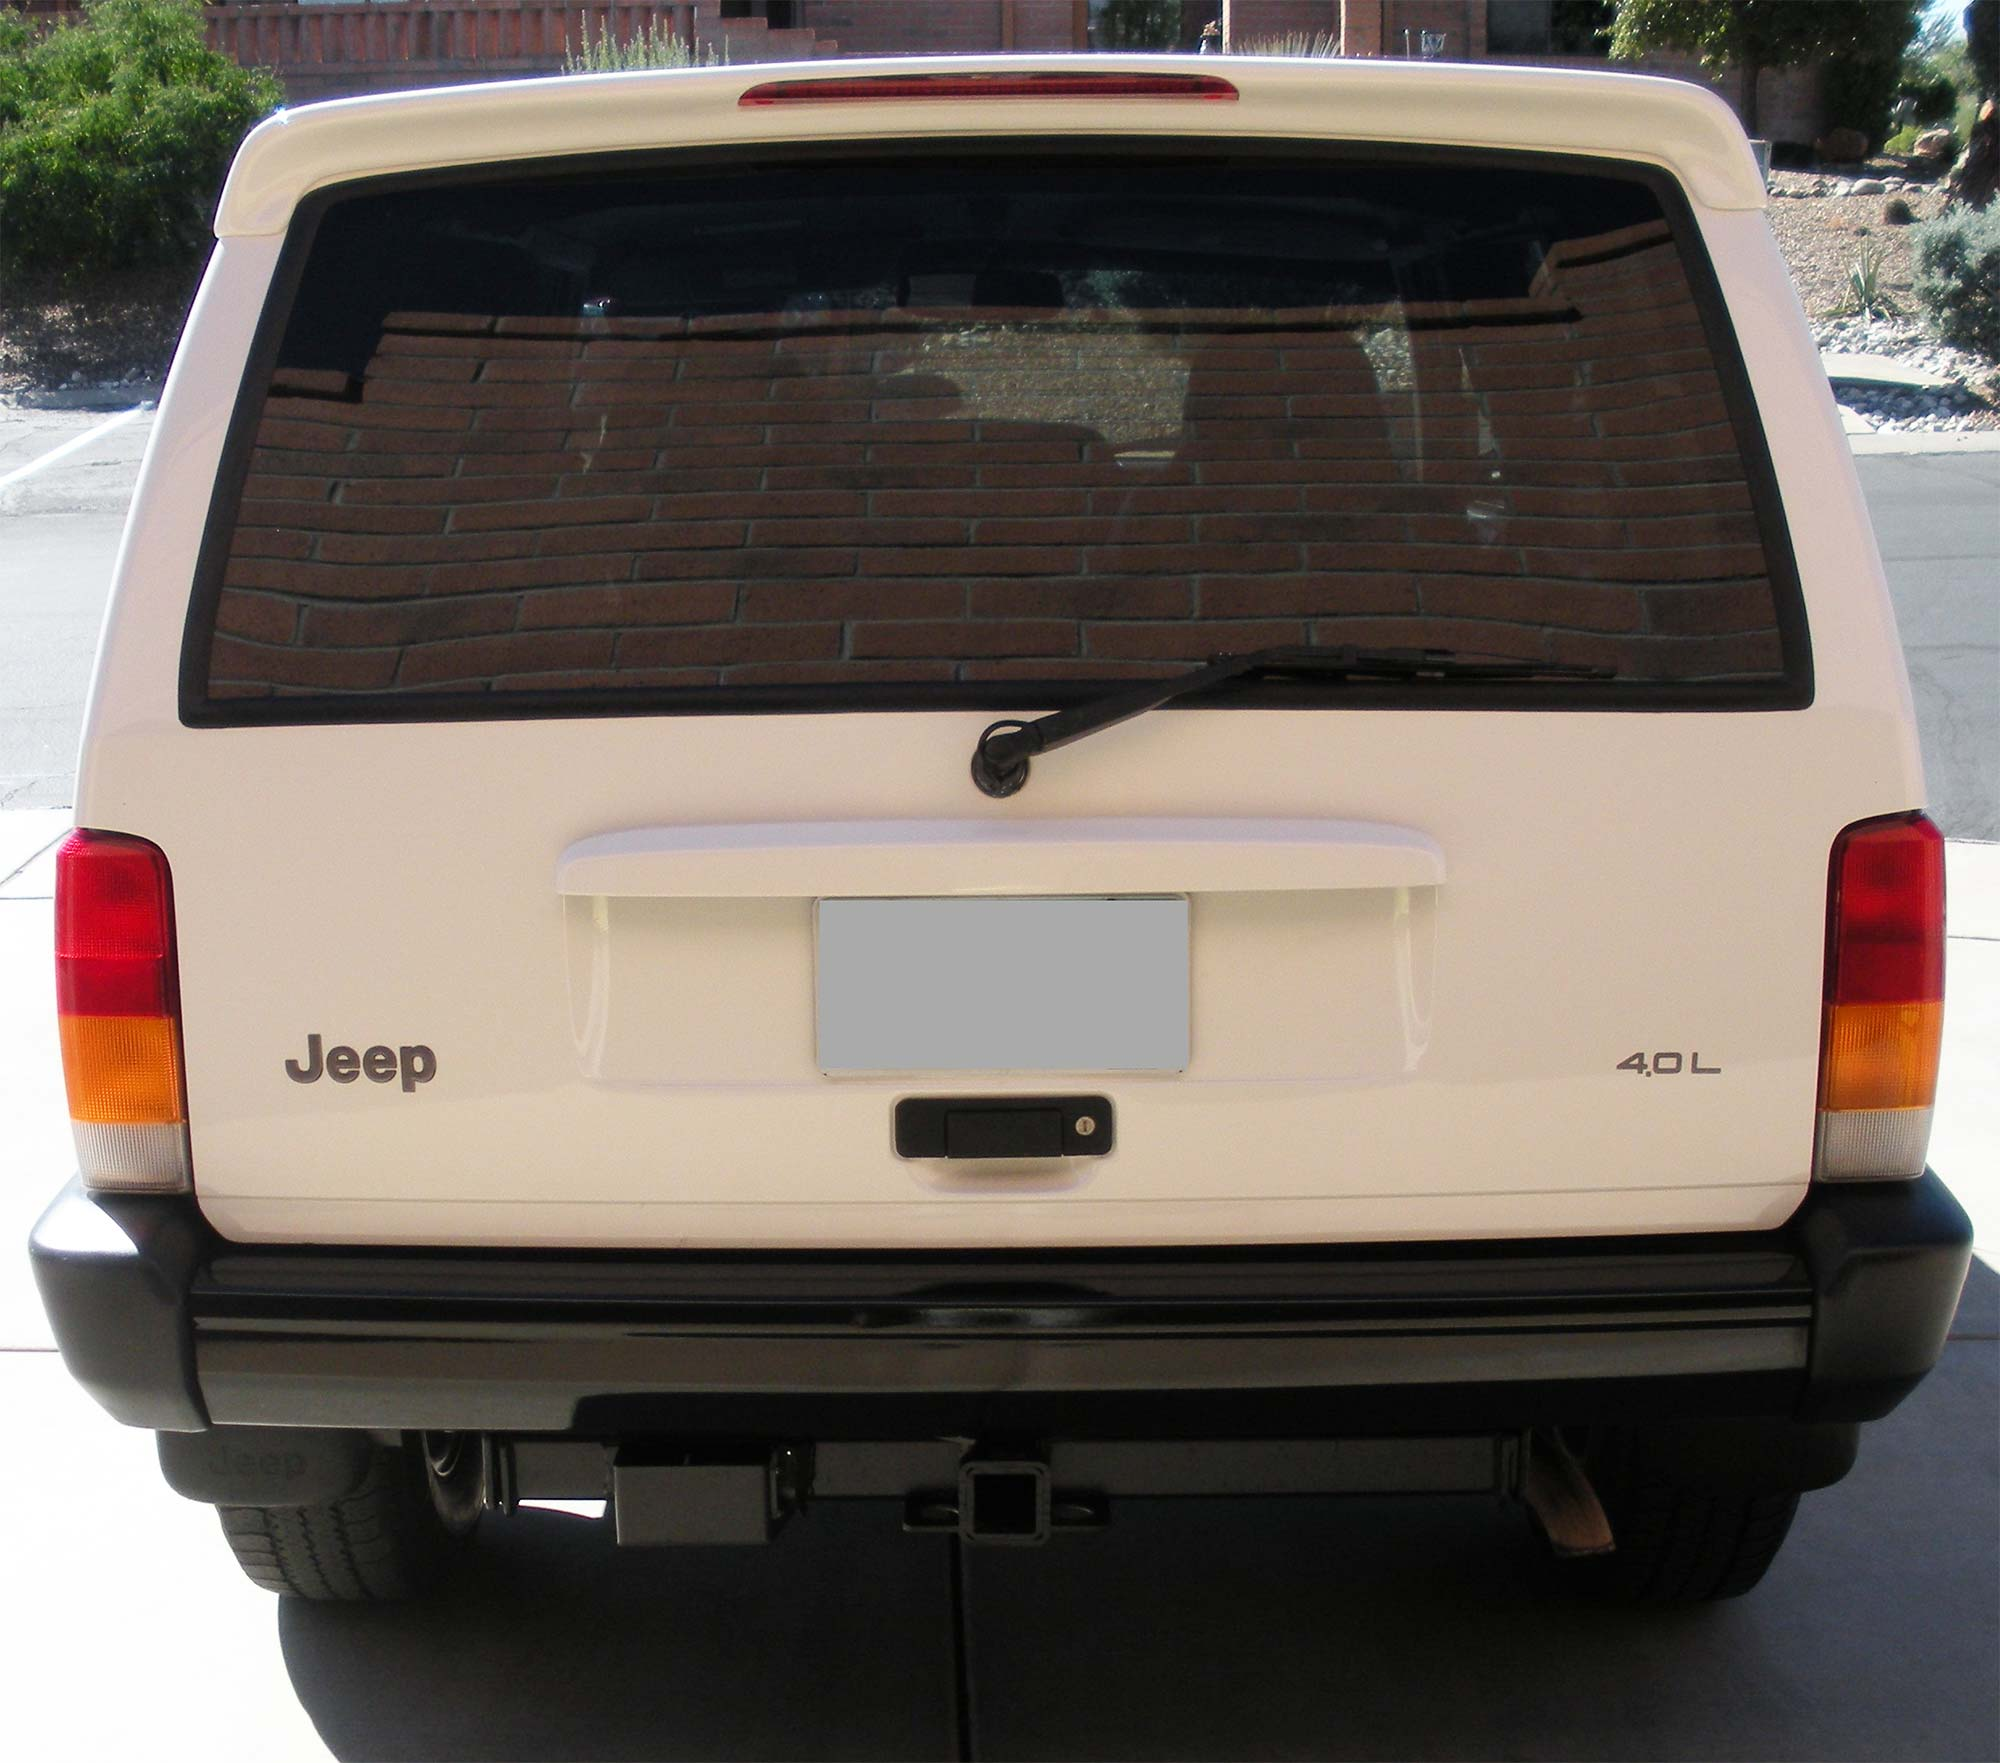 282050972538 together with 282050972538 as well Jeep Cherokee Xj Custom Spoiler With Spoiler Led Brake Light besides Jeep Cherokee Xj Custom Spoiler With Spoiler Led Brake Light in addition Jeep Cherokee Xj Custom Spoiler With Spoiler Led Brake Light. on jeep cherokee xj custom spoiler with spoilerlight type ii